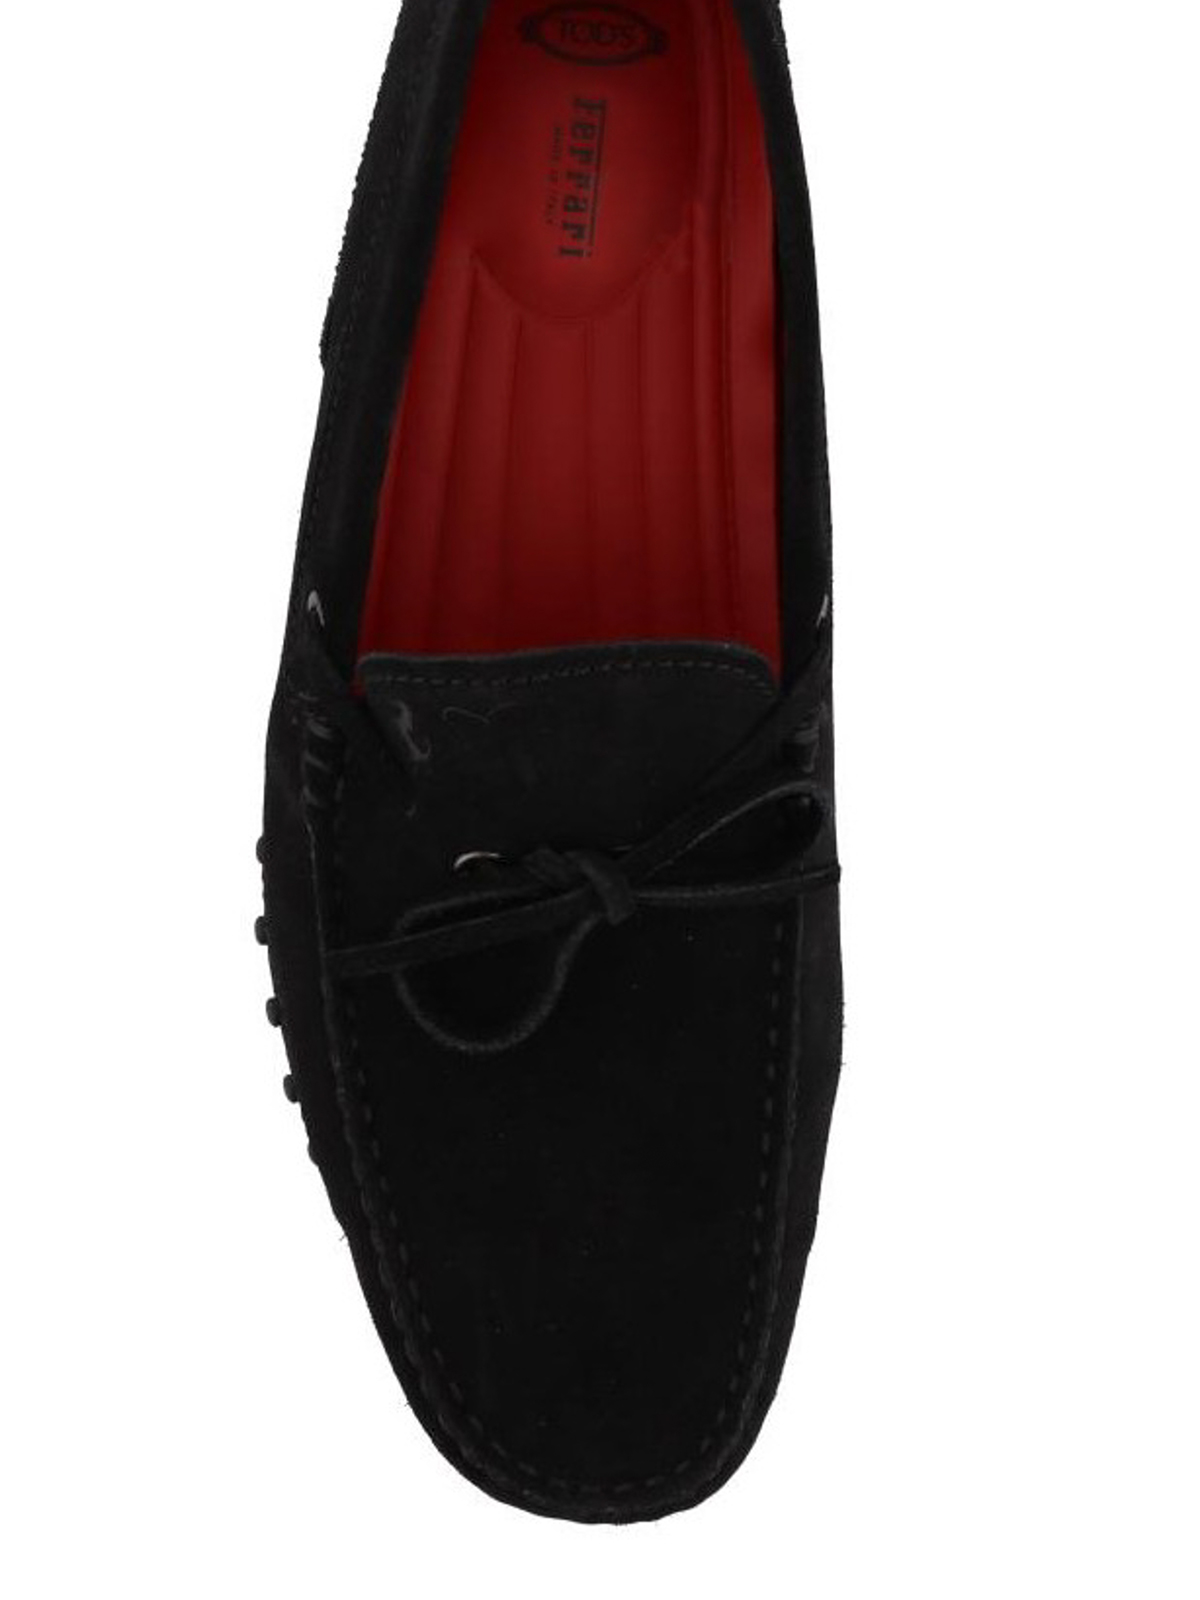 sale retailer 3adf9 45795 Tod'S - Tod's for Ferrari black suede loafers - Loafers ...